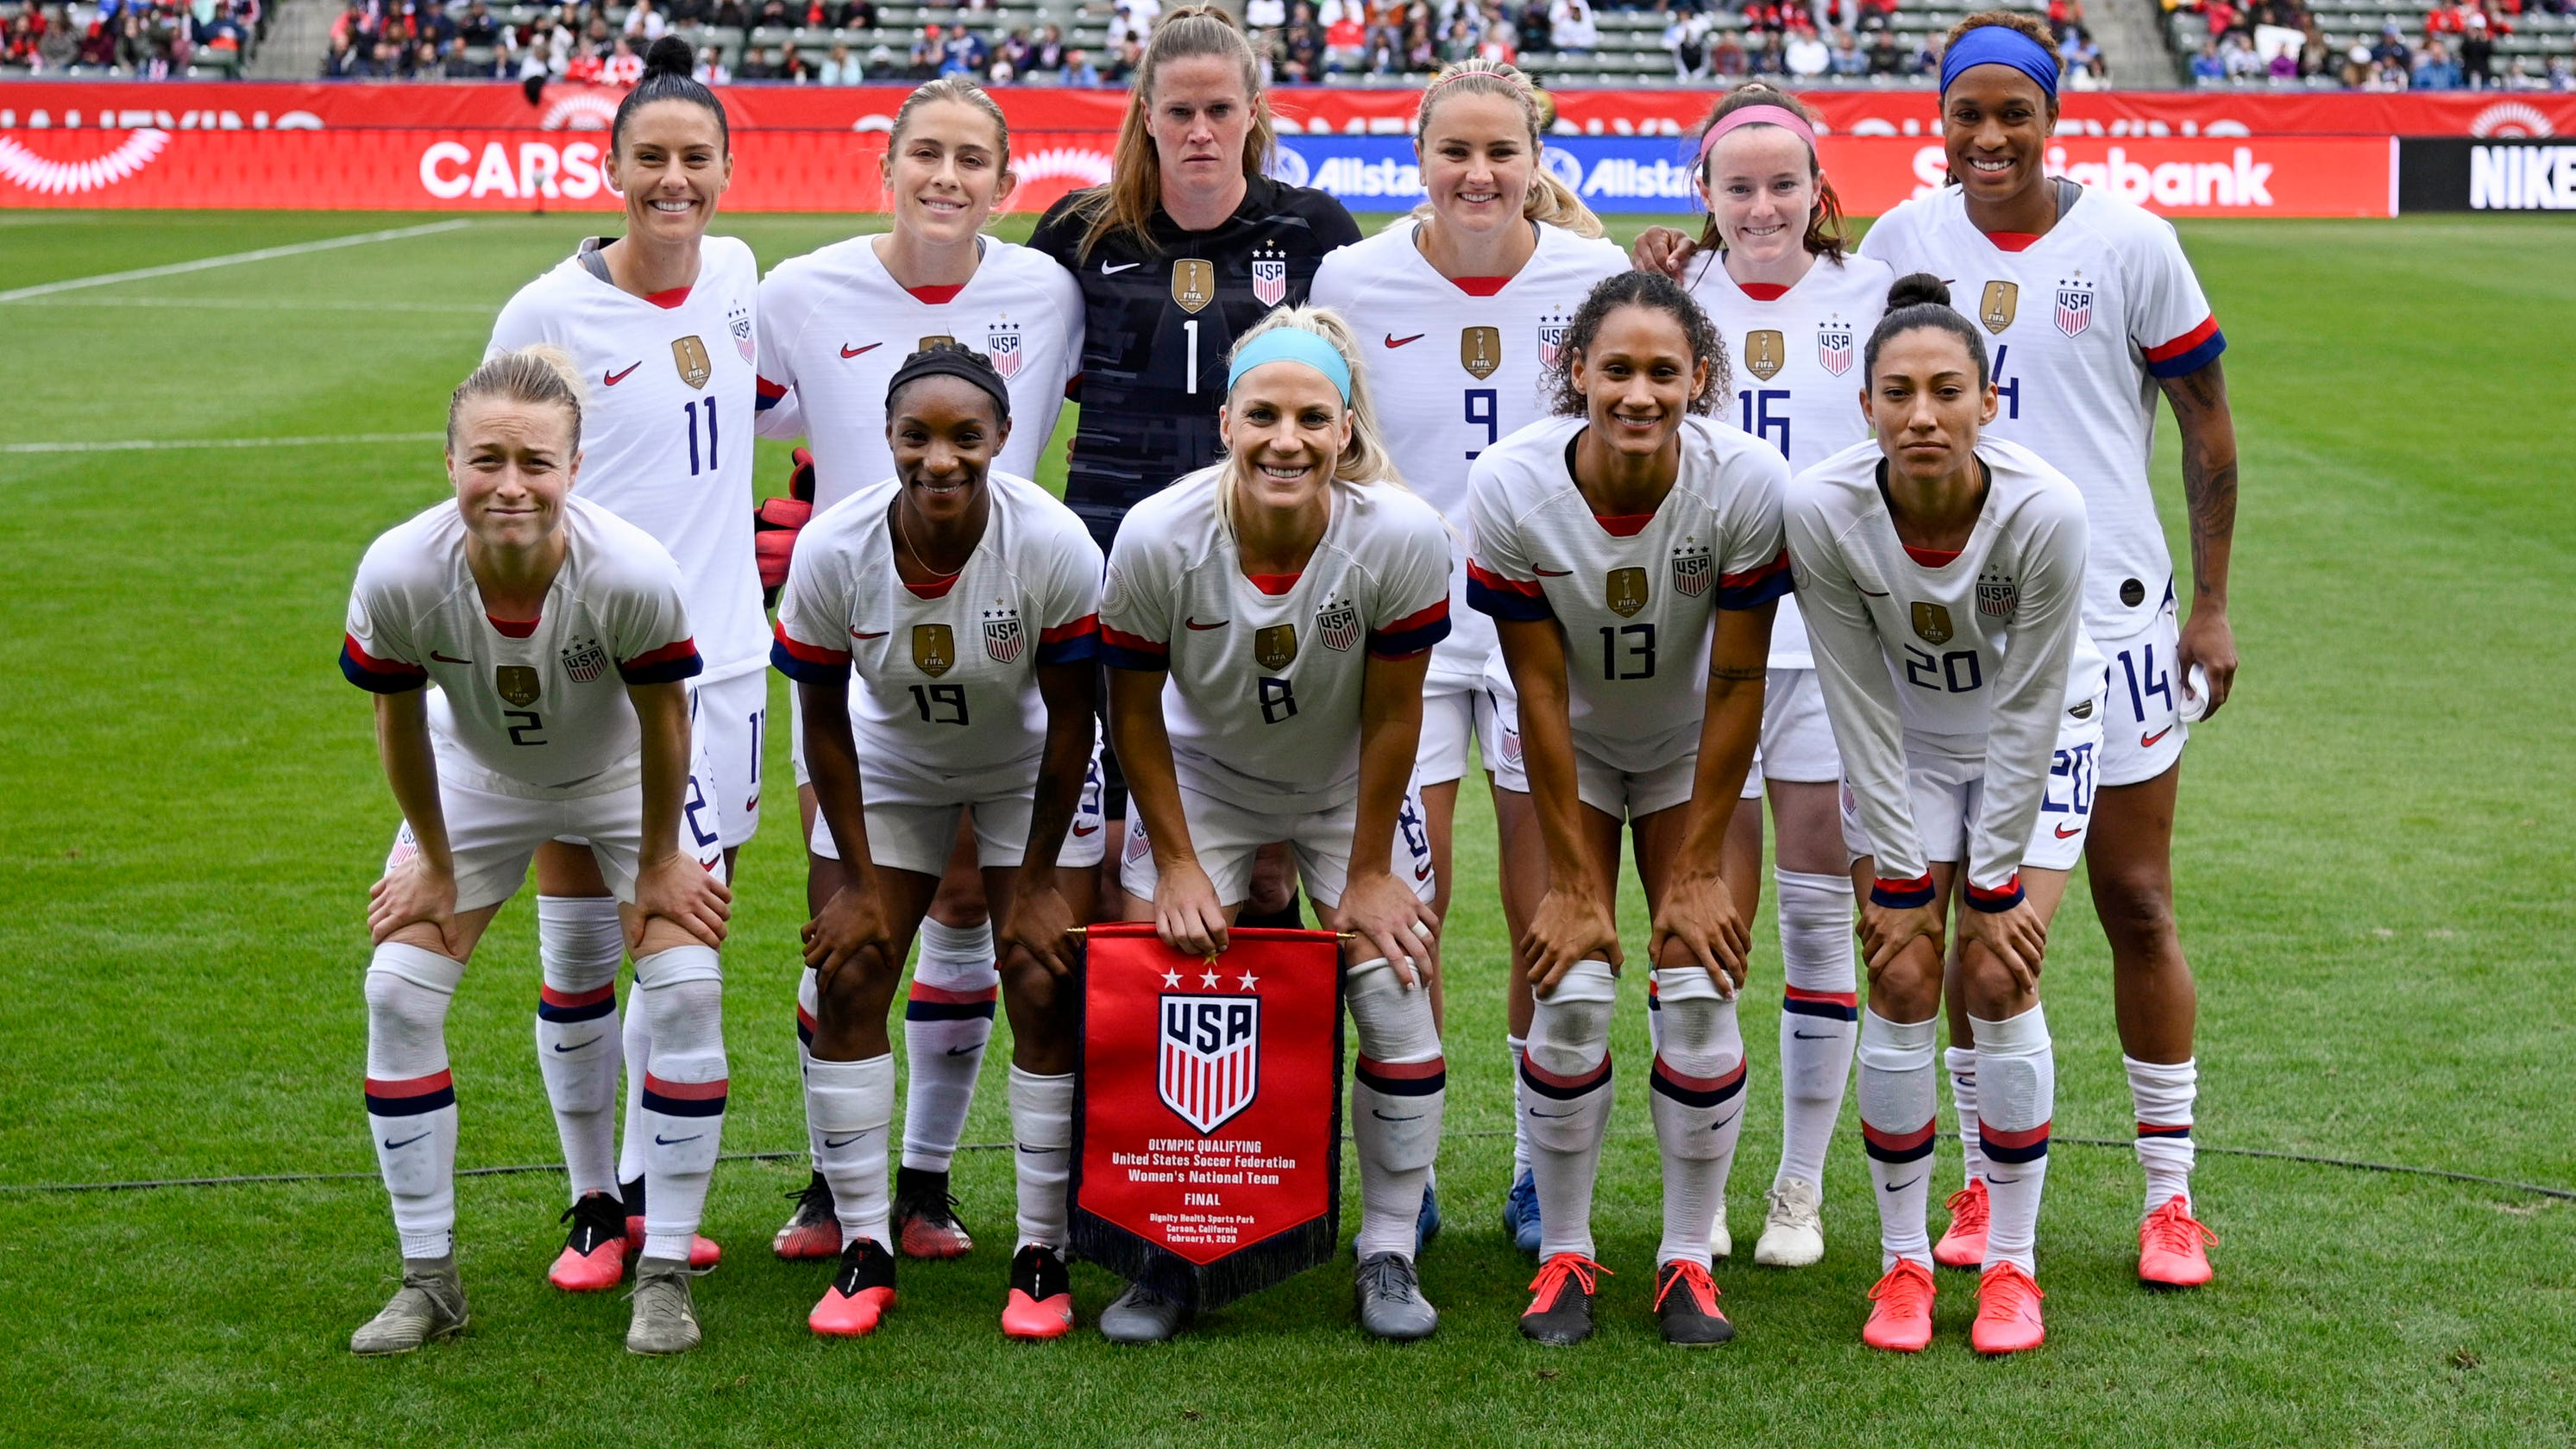 Federal judge rejects U.S. women's national team's claim for equal pay, sides with U.S. Soccer